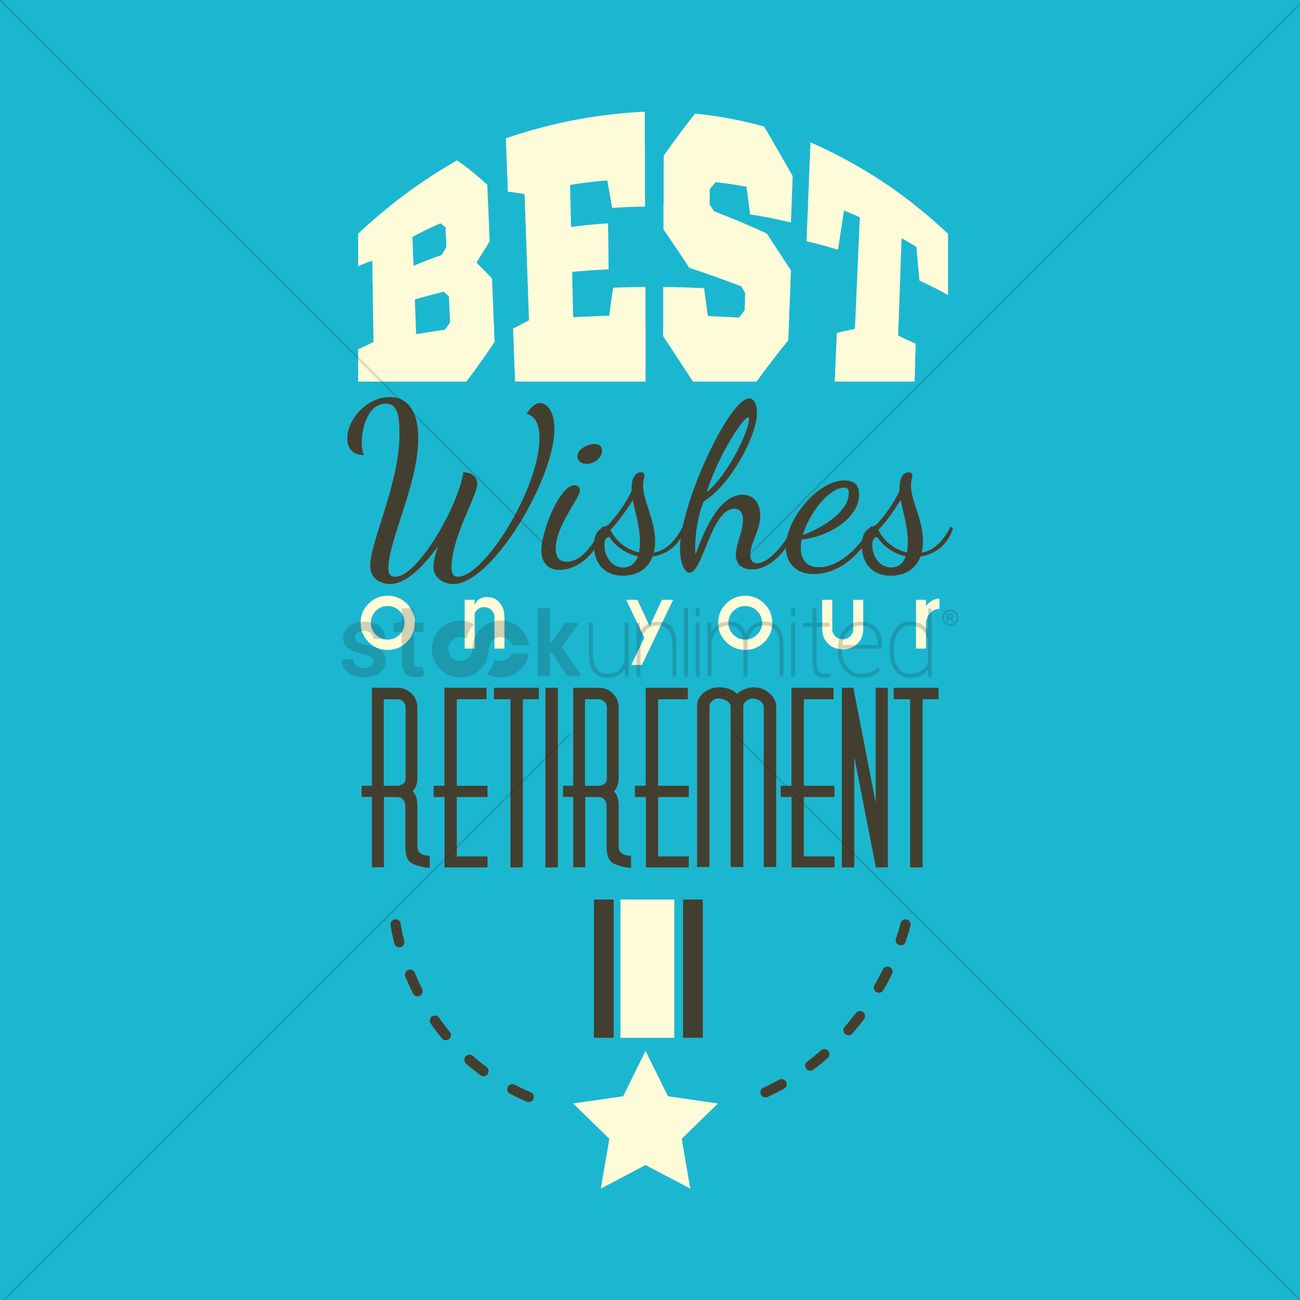 Positive positivity well wishes wishes wish expression expressions best wishes on your retirement kristyandbryce Images